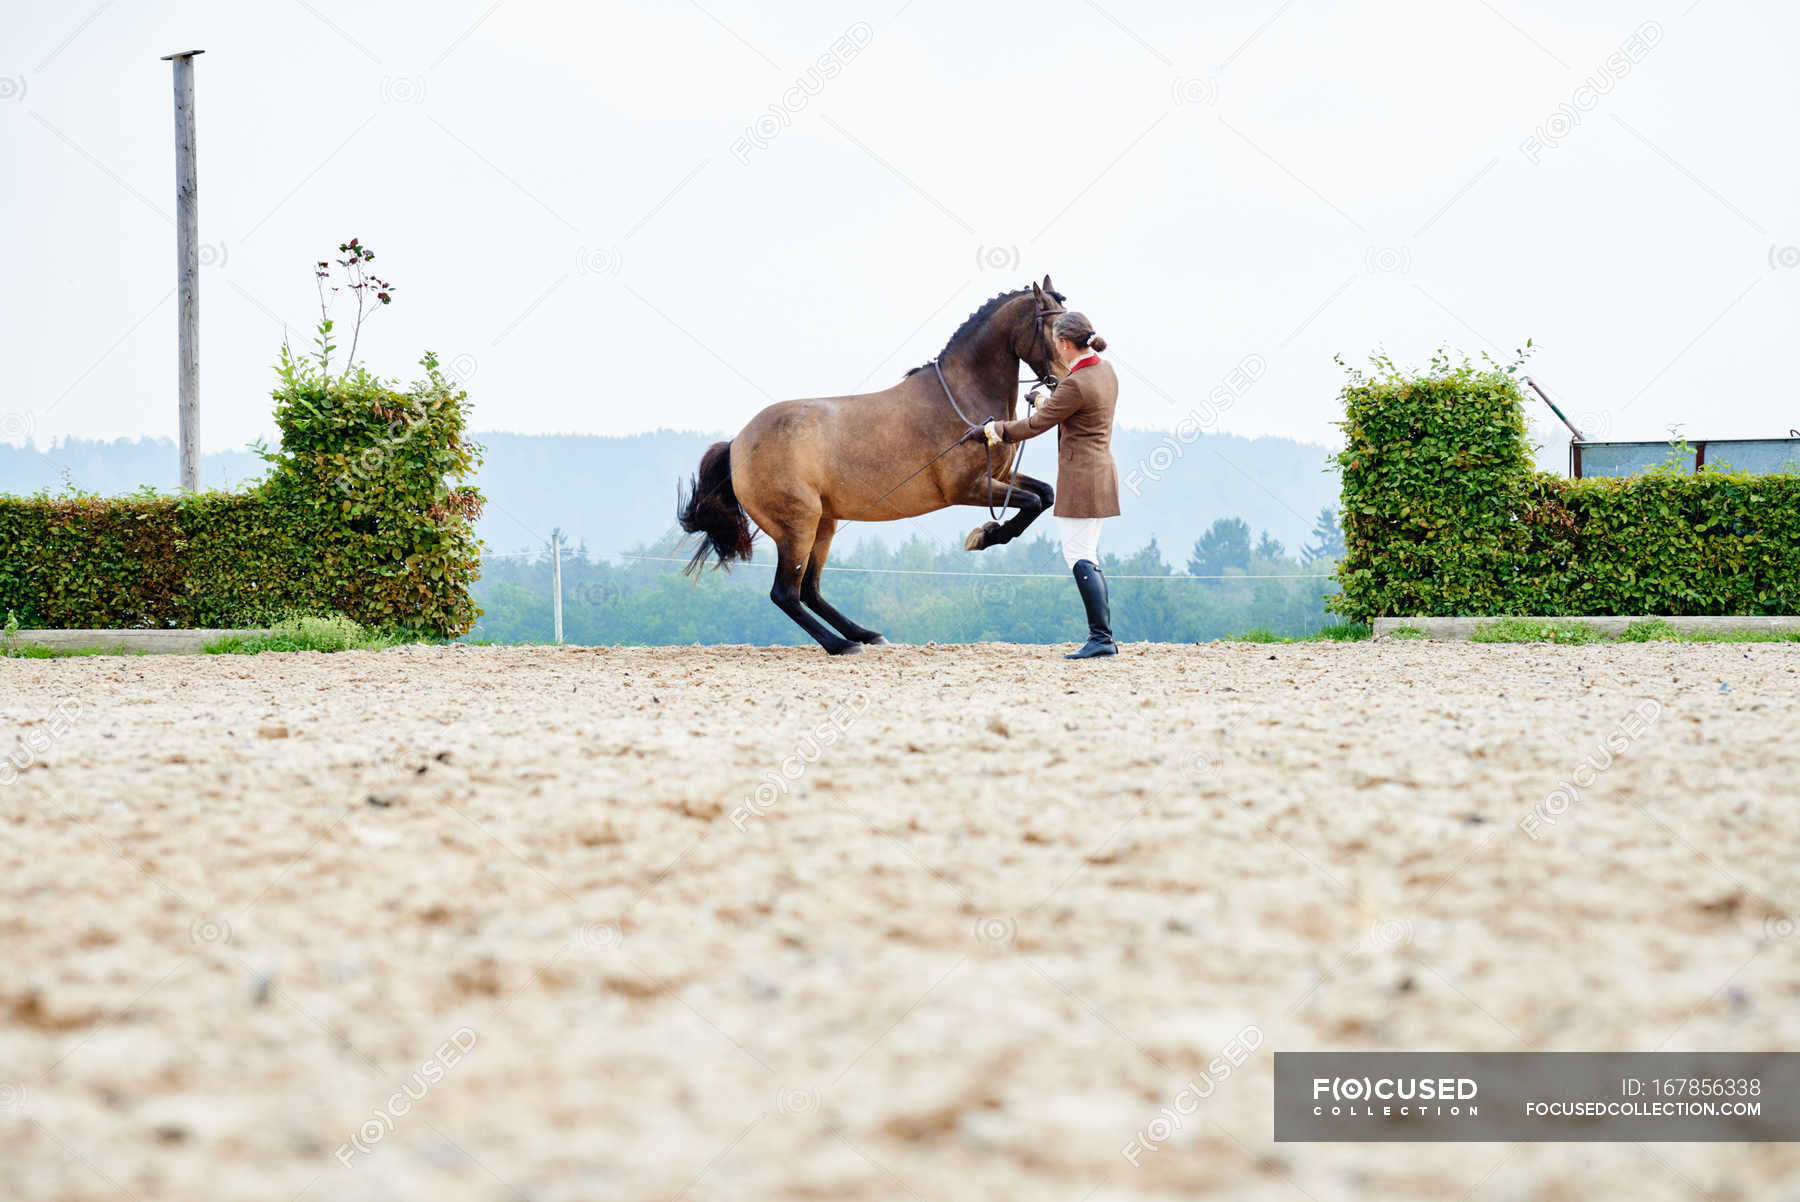 Female Rider Training Dressage Horse On Hind Legs In Equestrian Arena Obedience Equestrian Sport Stock Photo 167856338